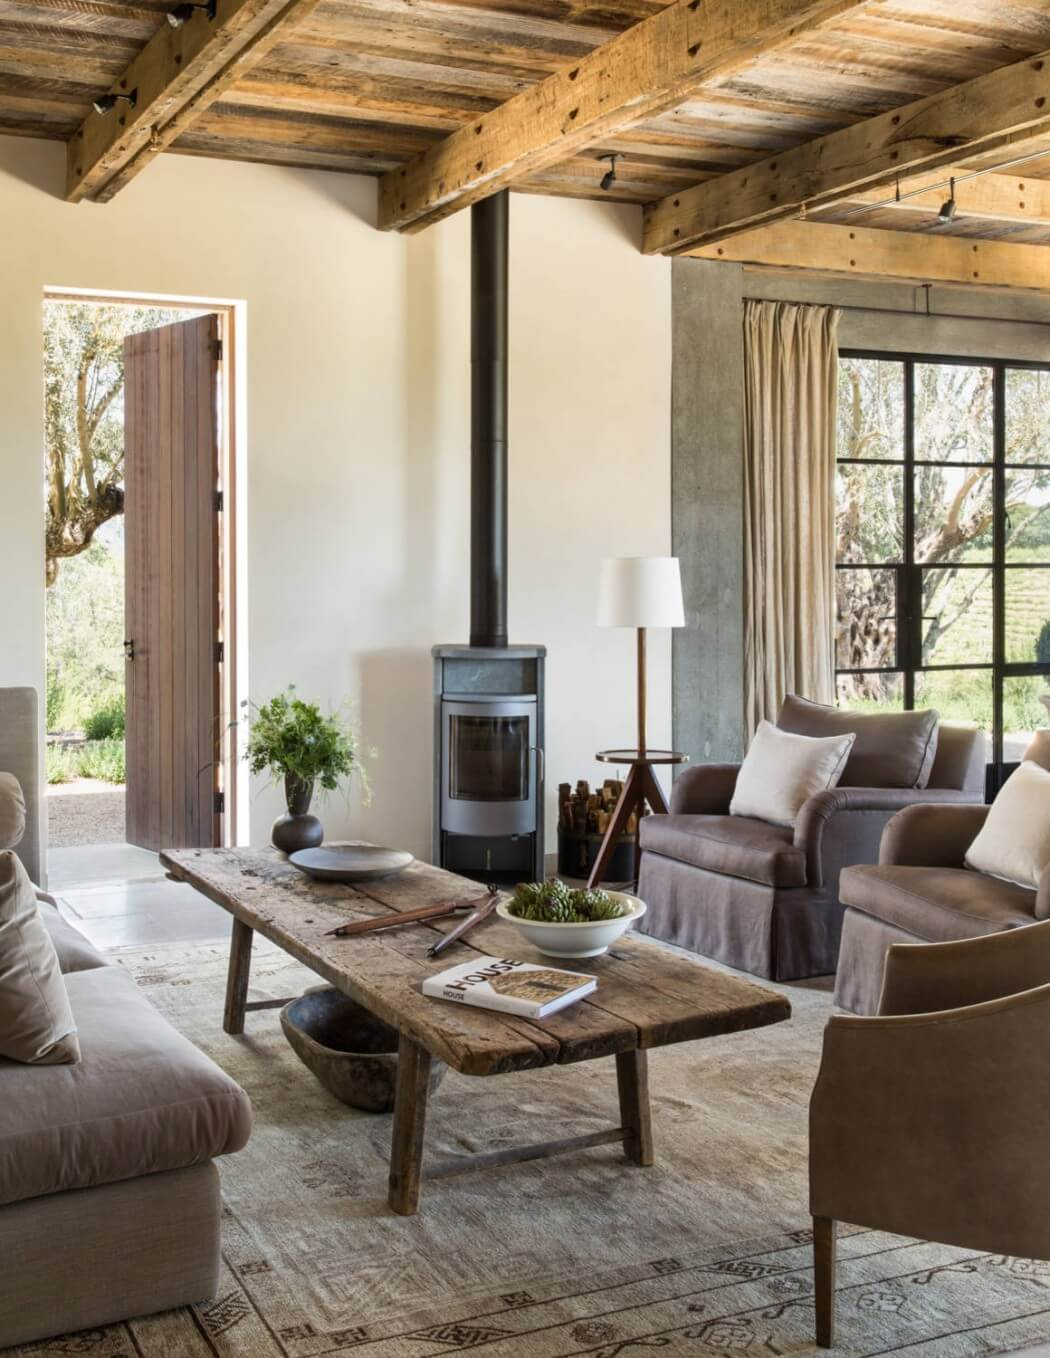 maison campagne chic Archives  PLANETE DECO a homes world